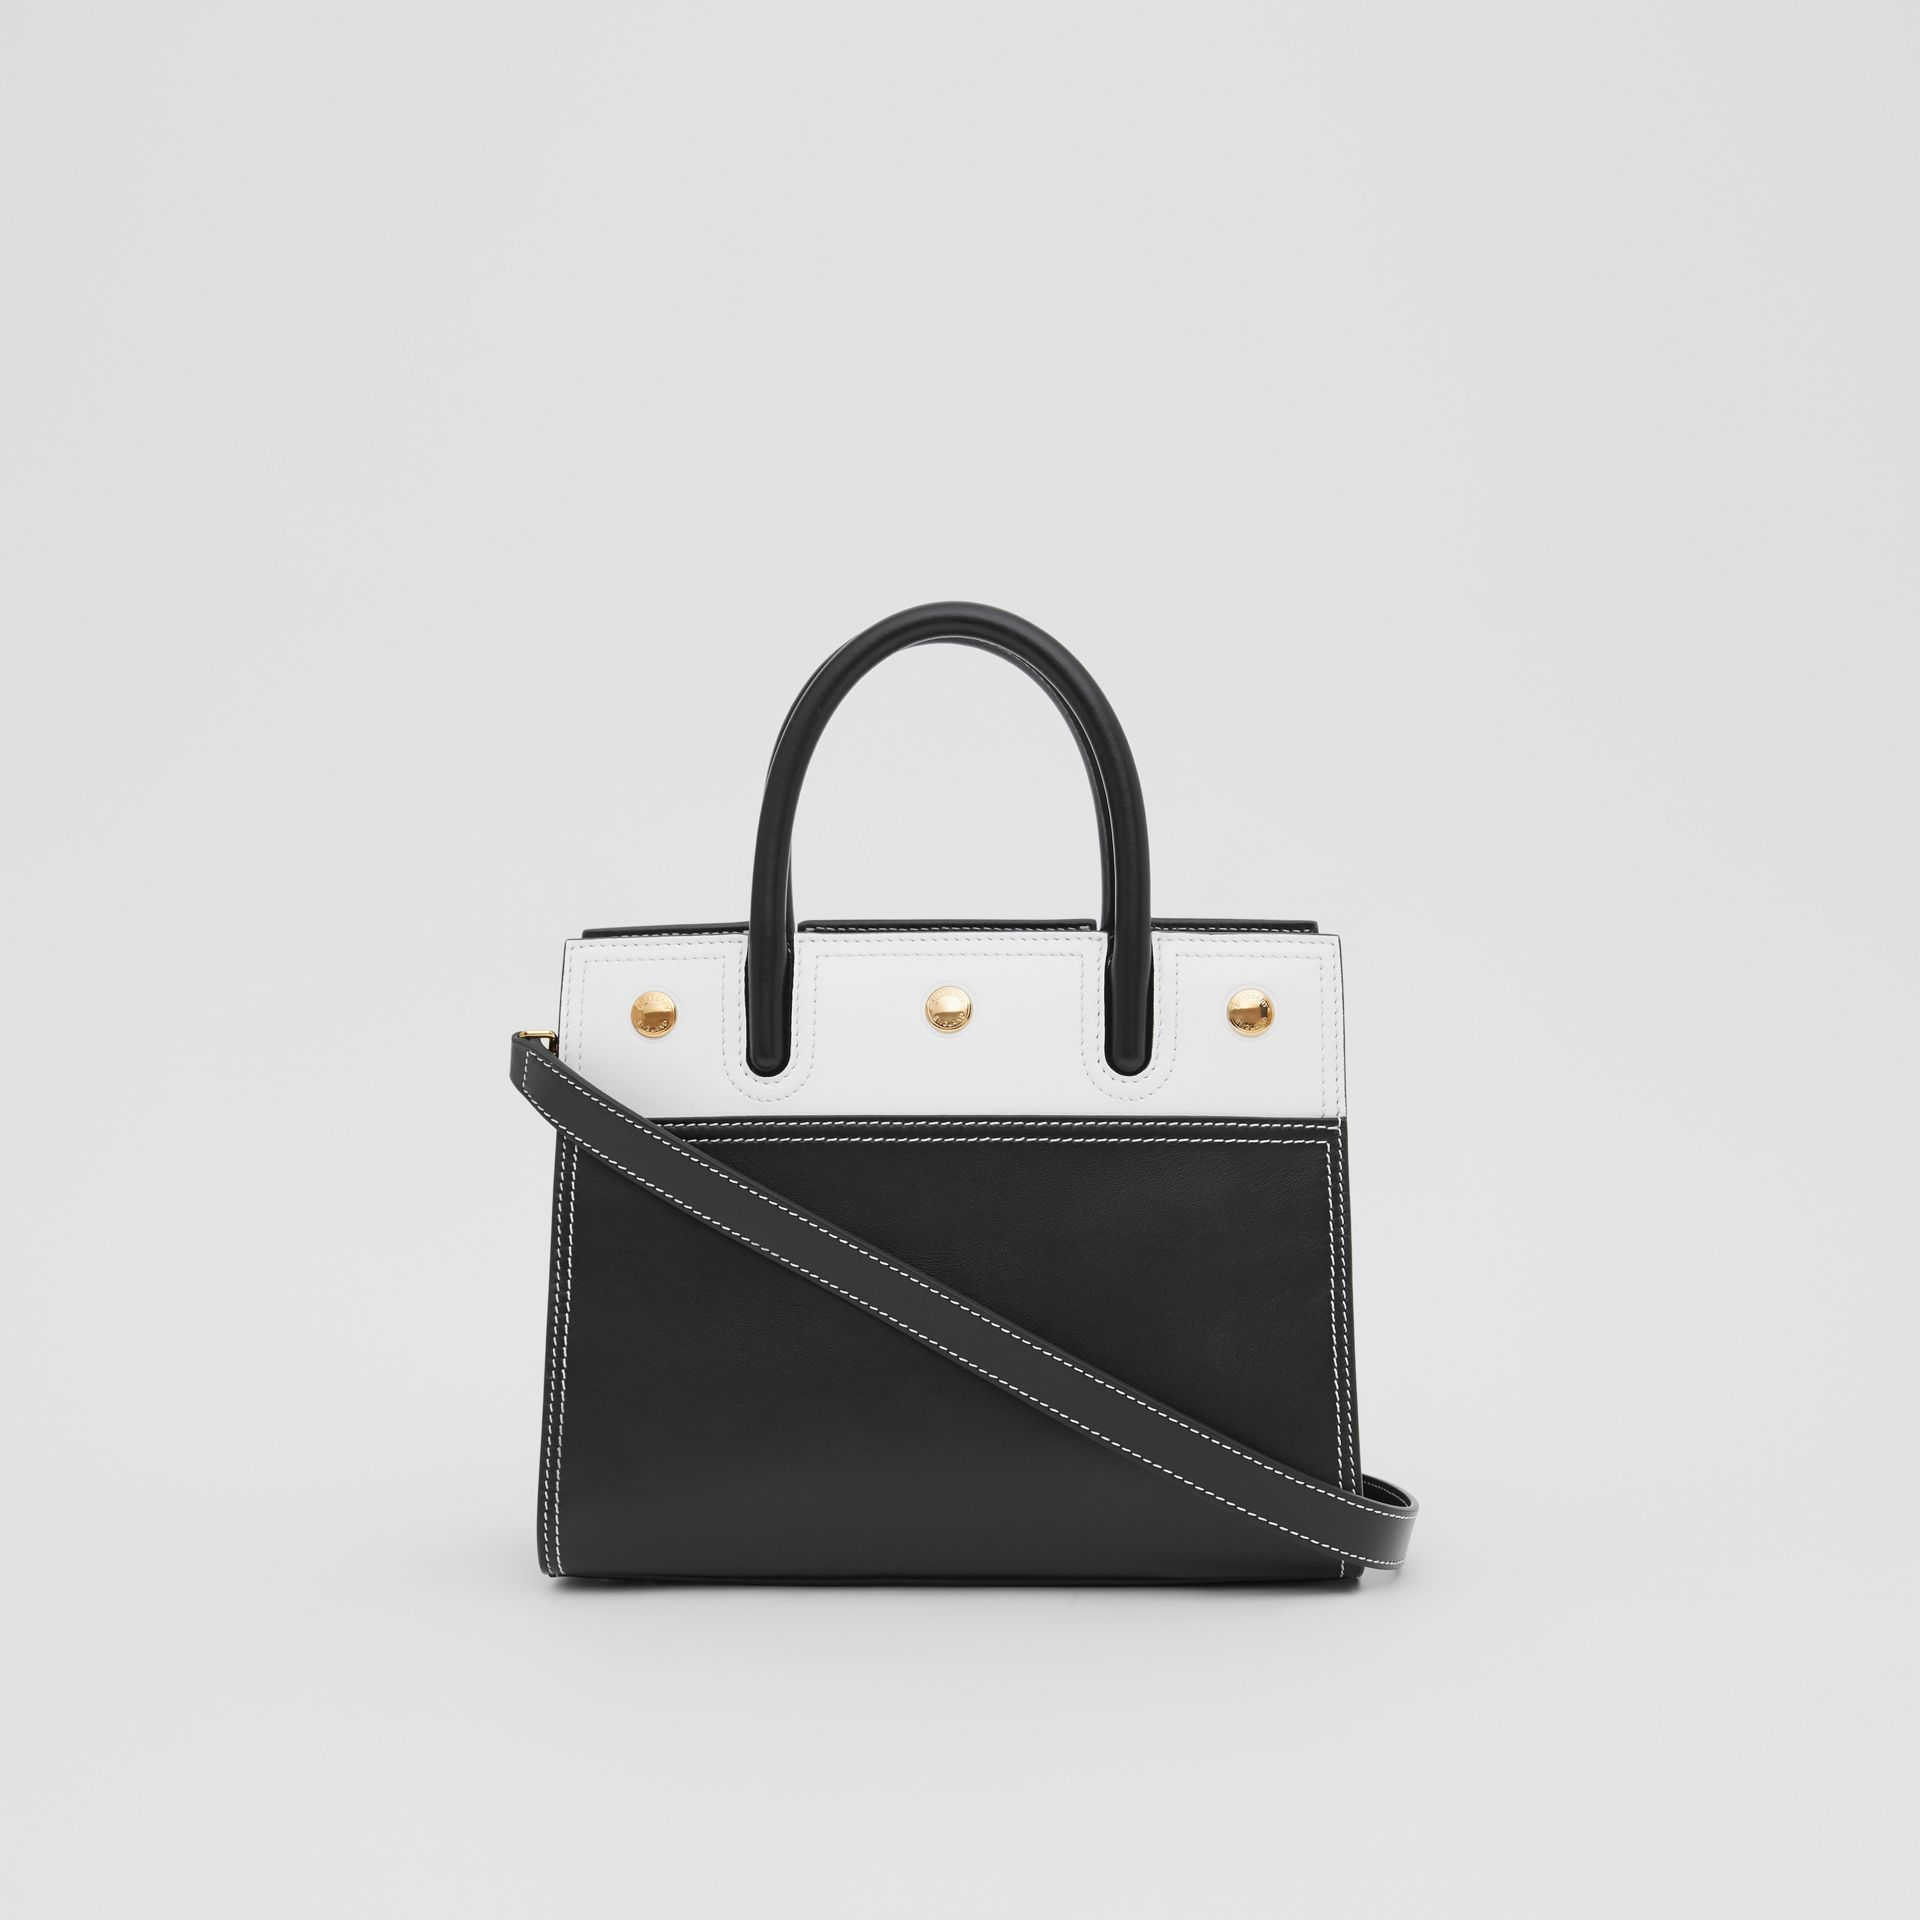 Mini Leather Two-handle Title Bag in Black/white - Women | Burberry - gallery image 5